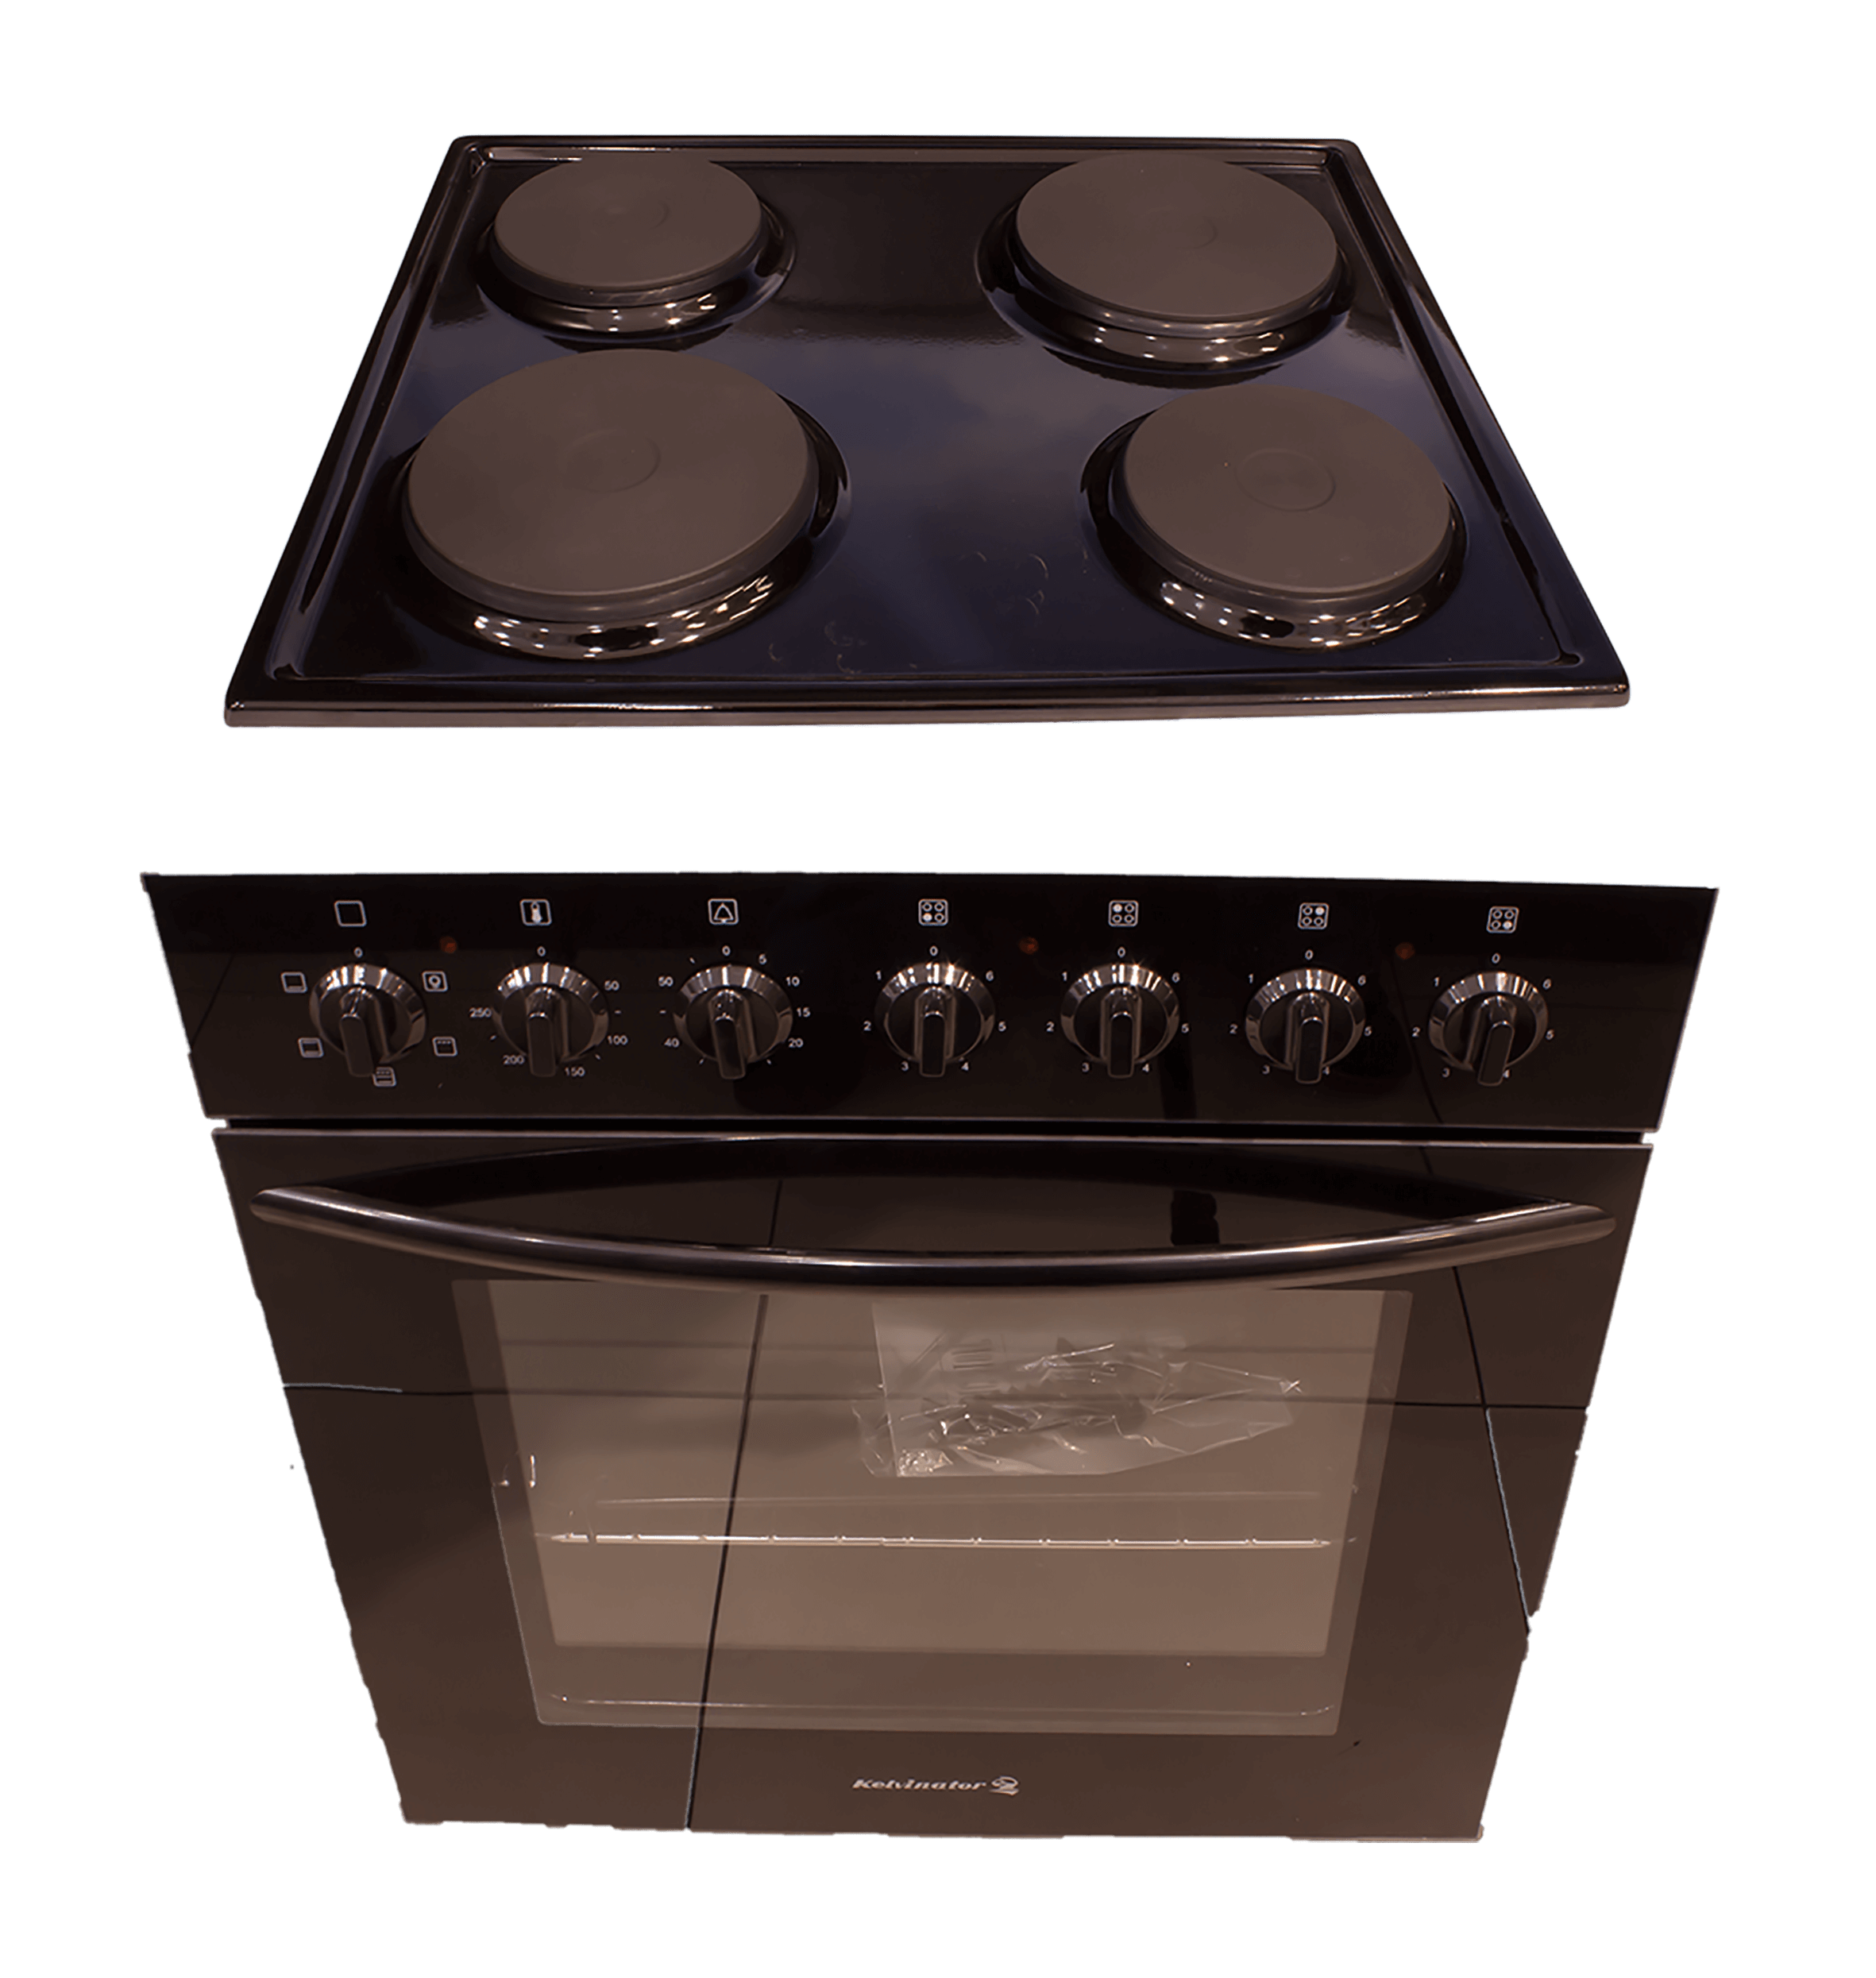 Kelvinator Built In Oven And Hob Set Black Model